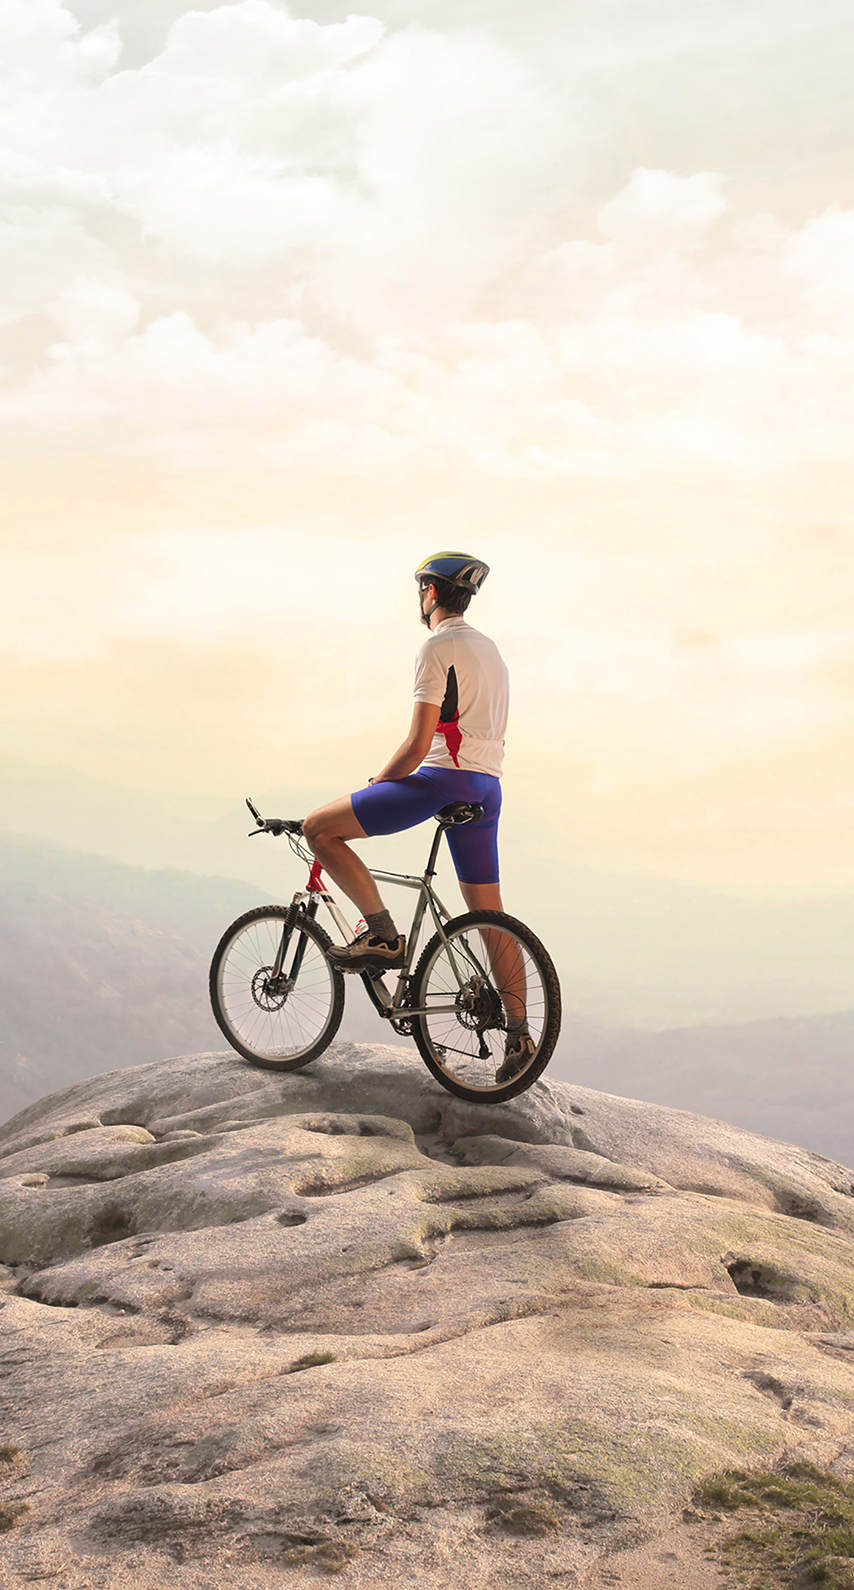 biker, mountain, graphic, wheel, man, freedom, people, one, outdoors, recreation, action, sport, leisure, adventure, cyclist